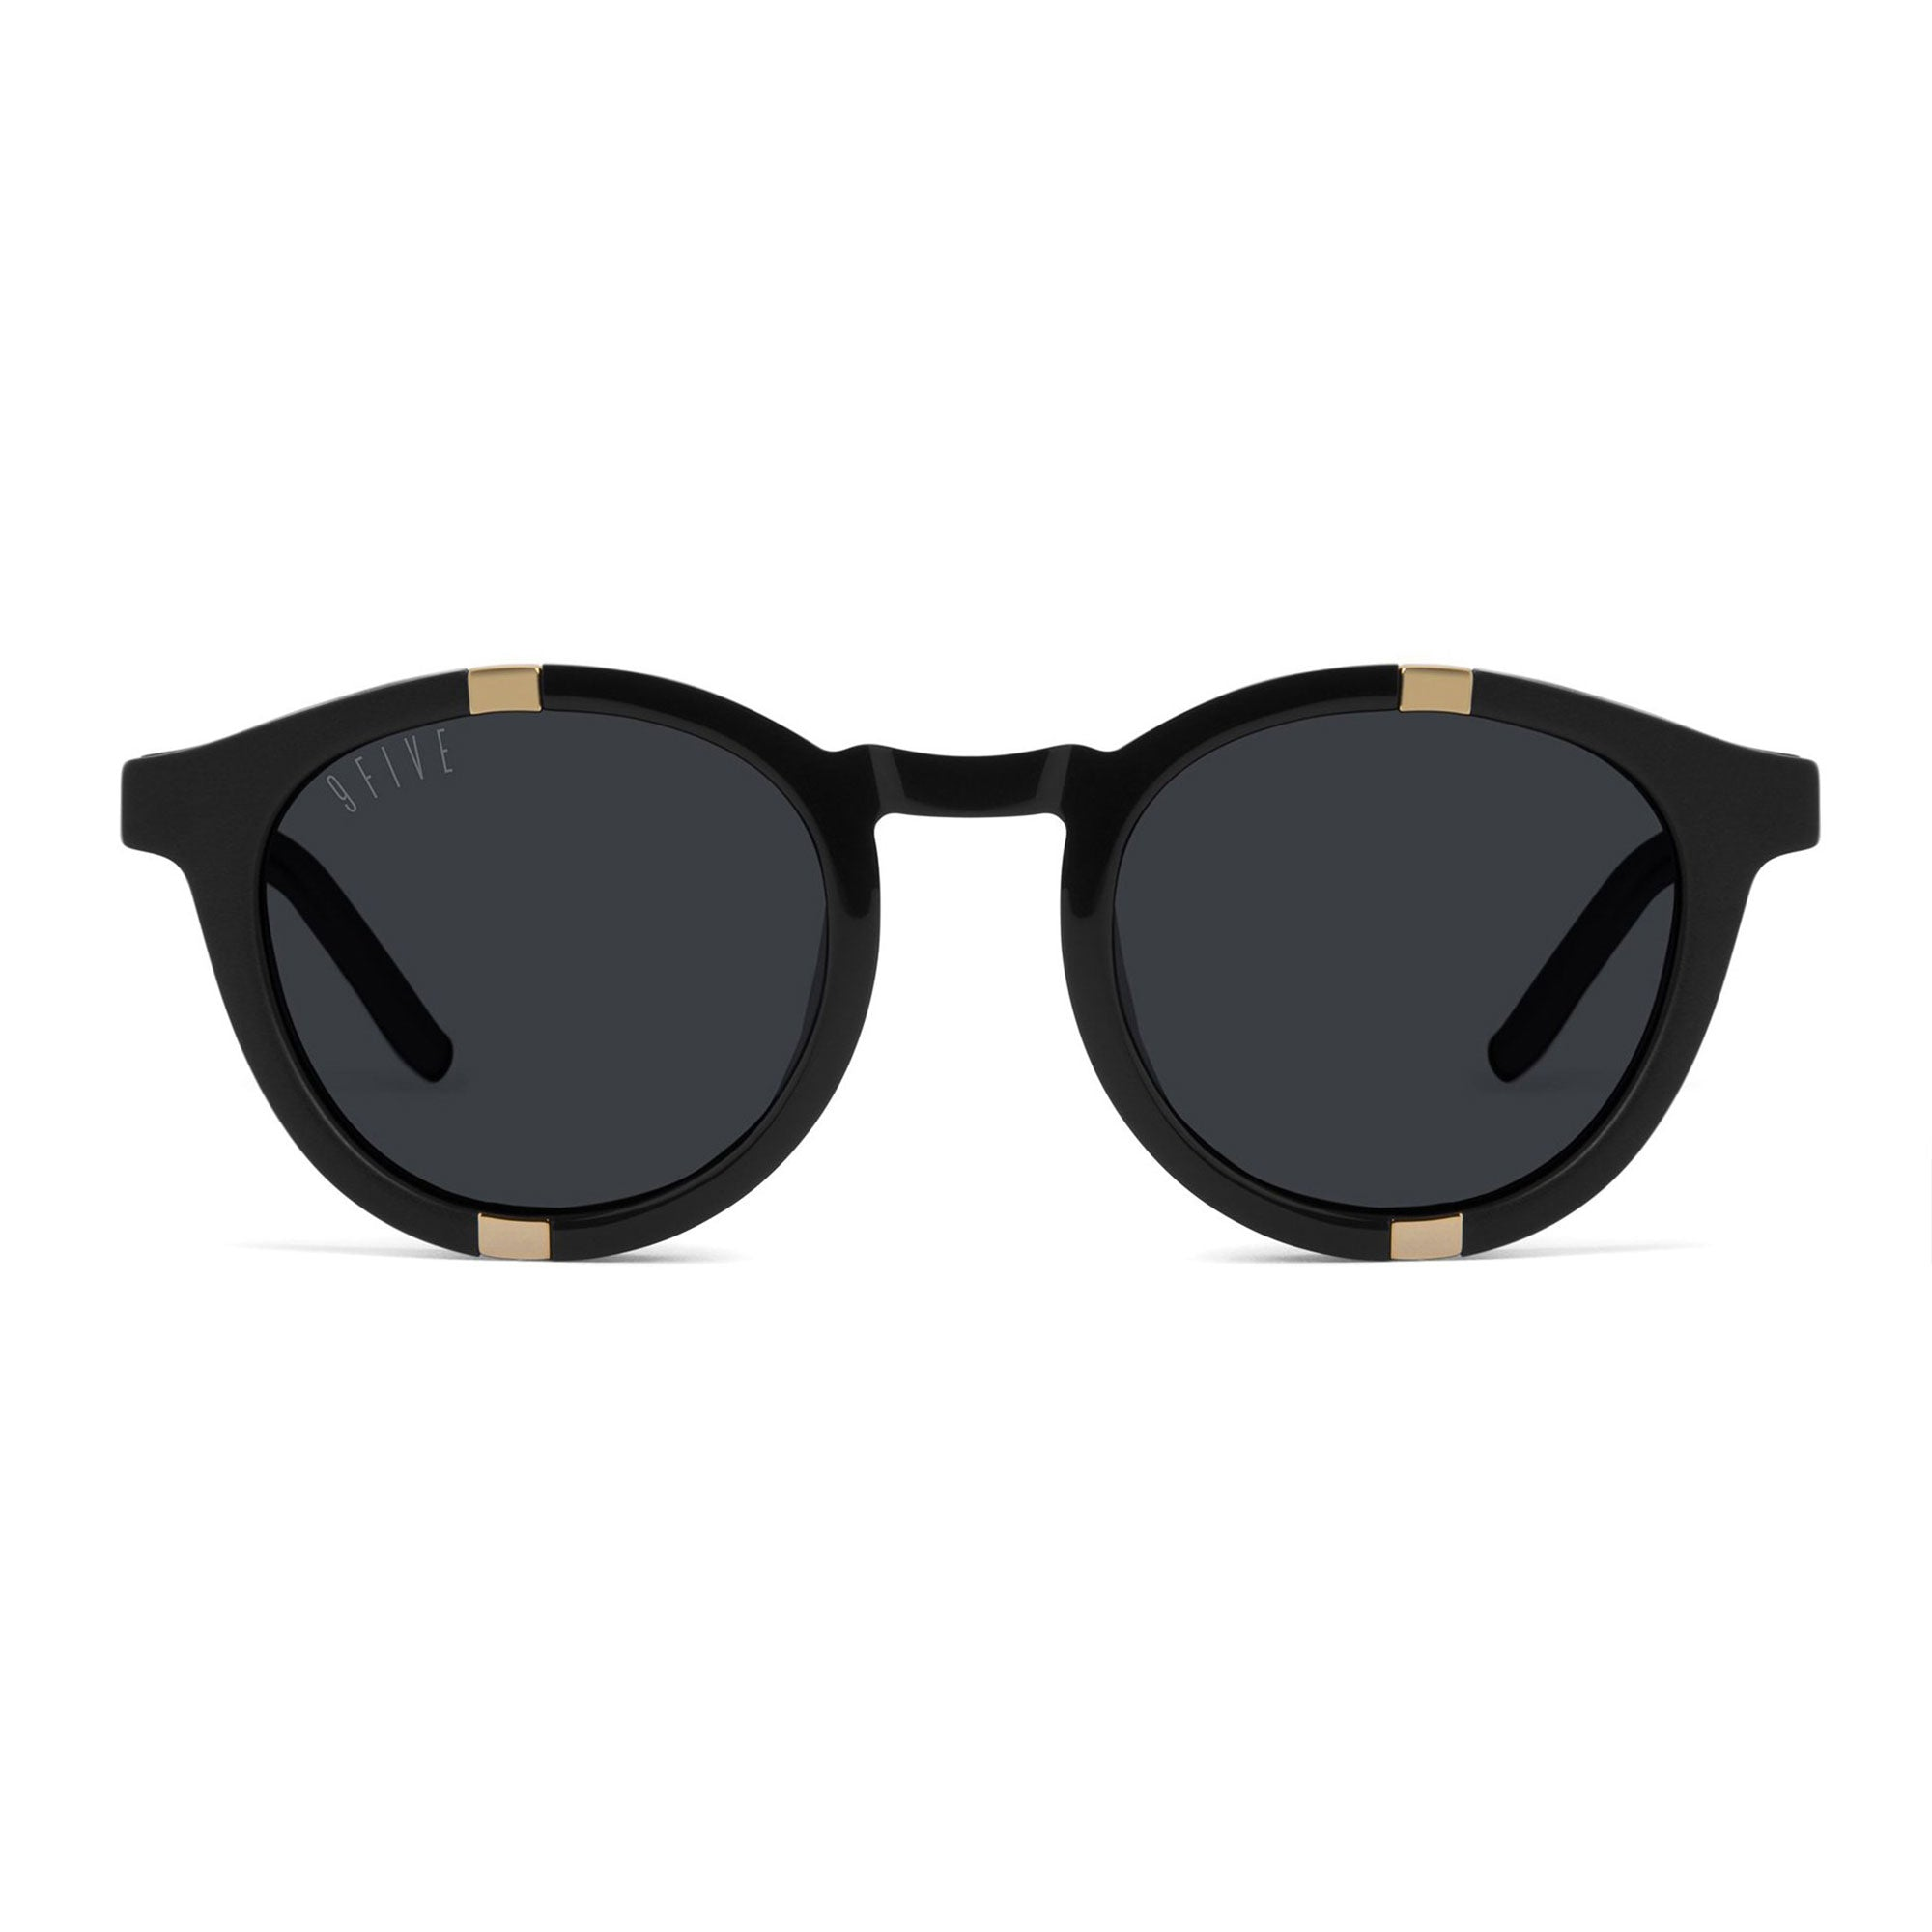 9FIVE Grove Sunglasses - Black/Gold Product Photo #2